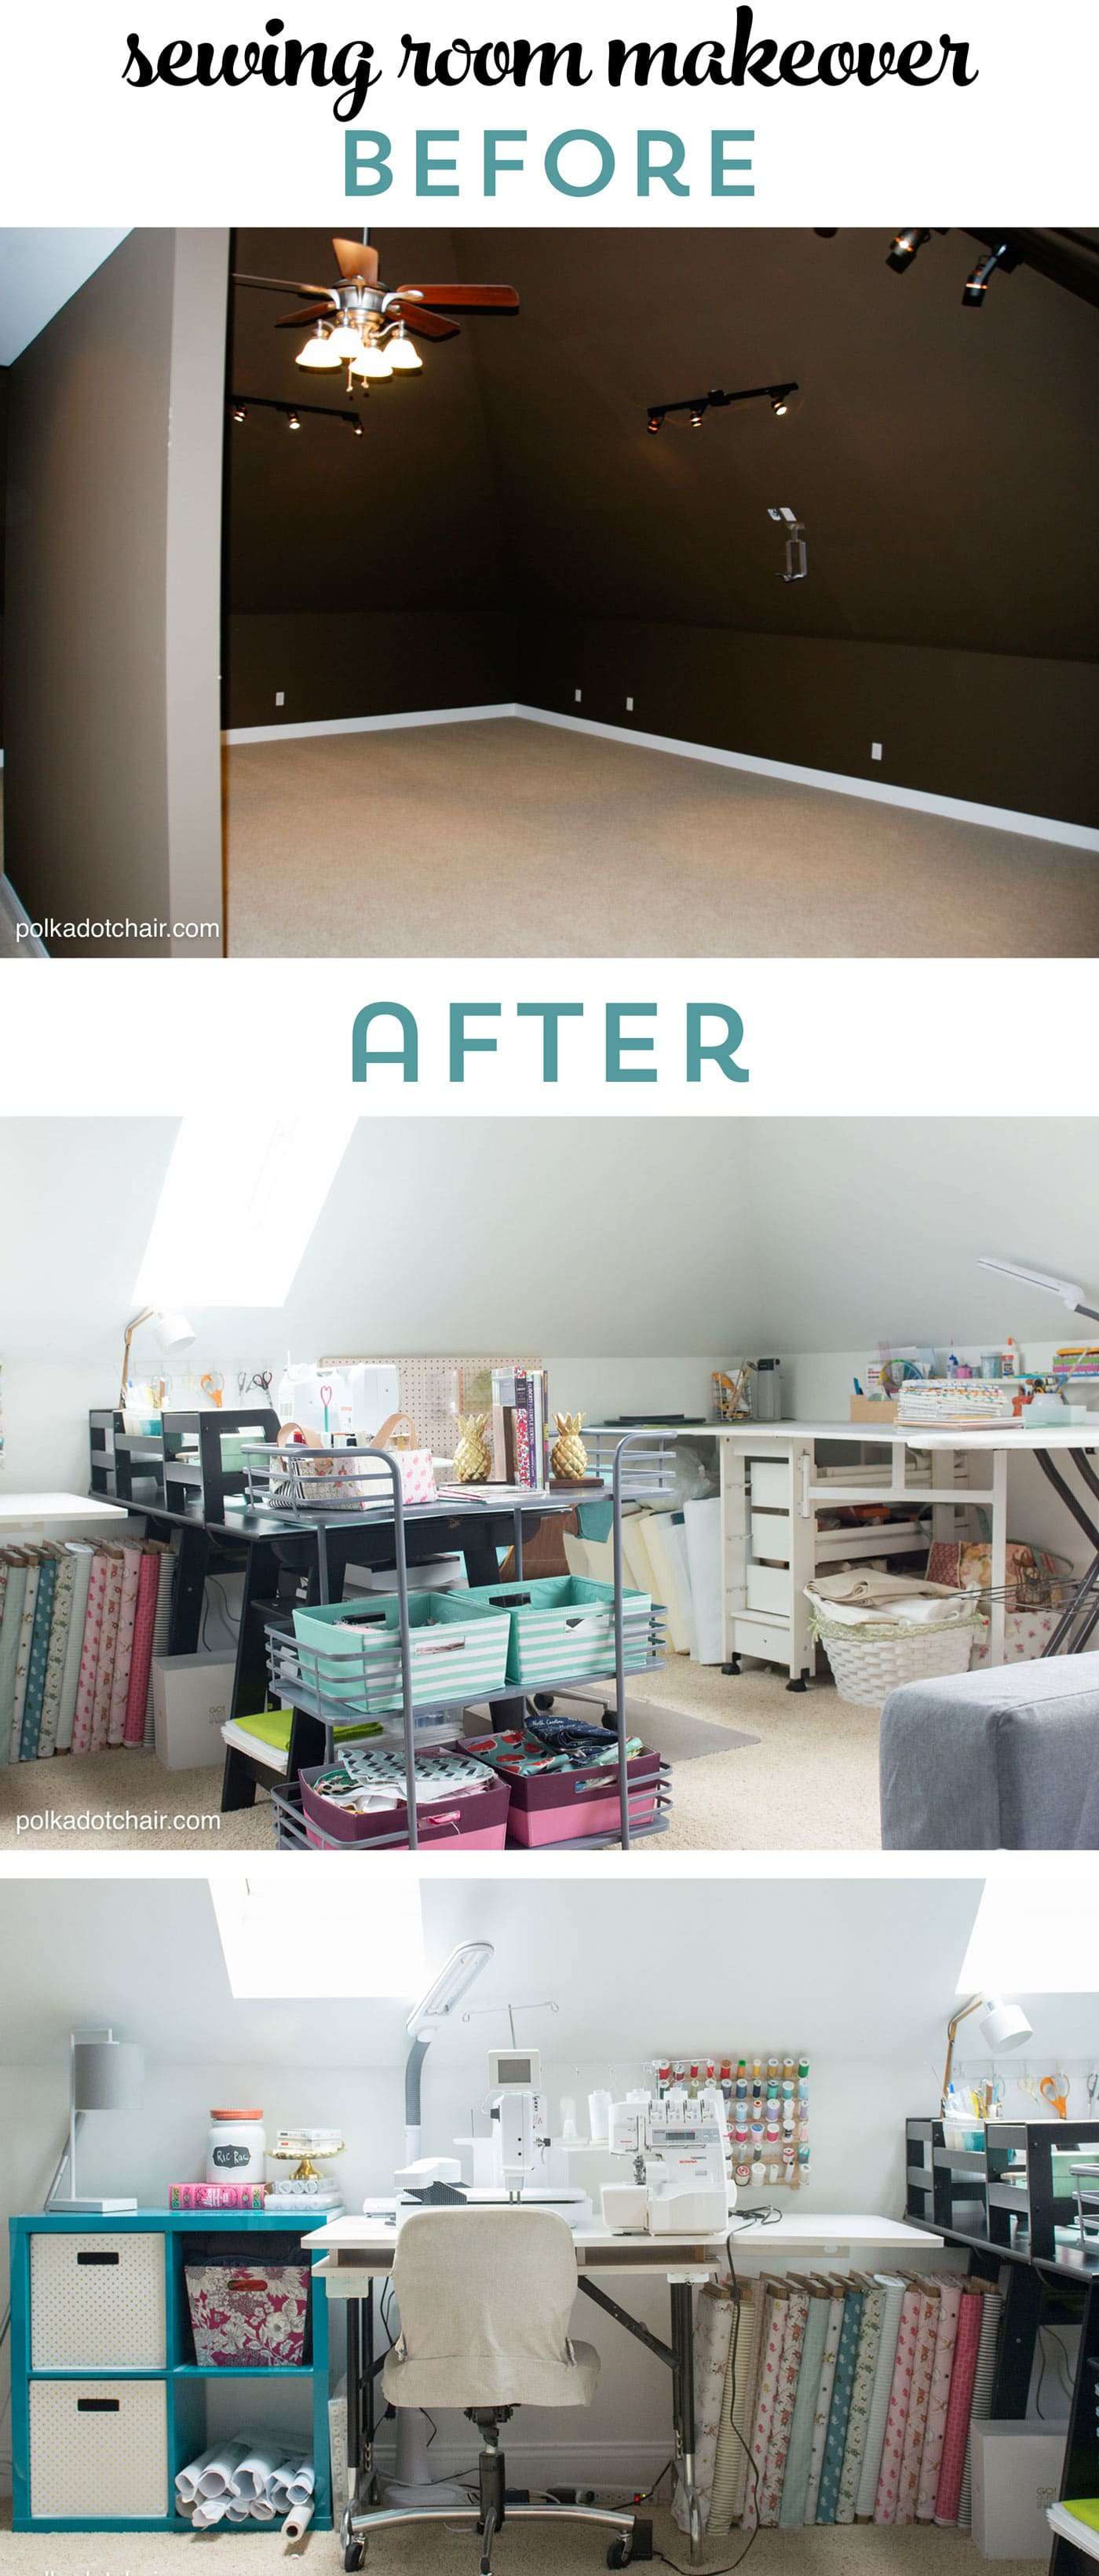 chair for bedroom design report cute & clever sewing room organization ideas homegoods giveaway! - the polka dot